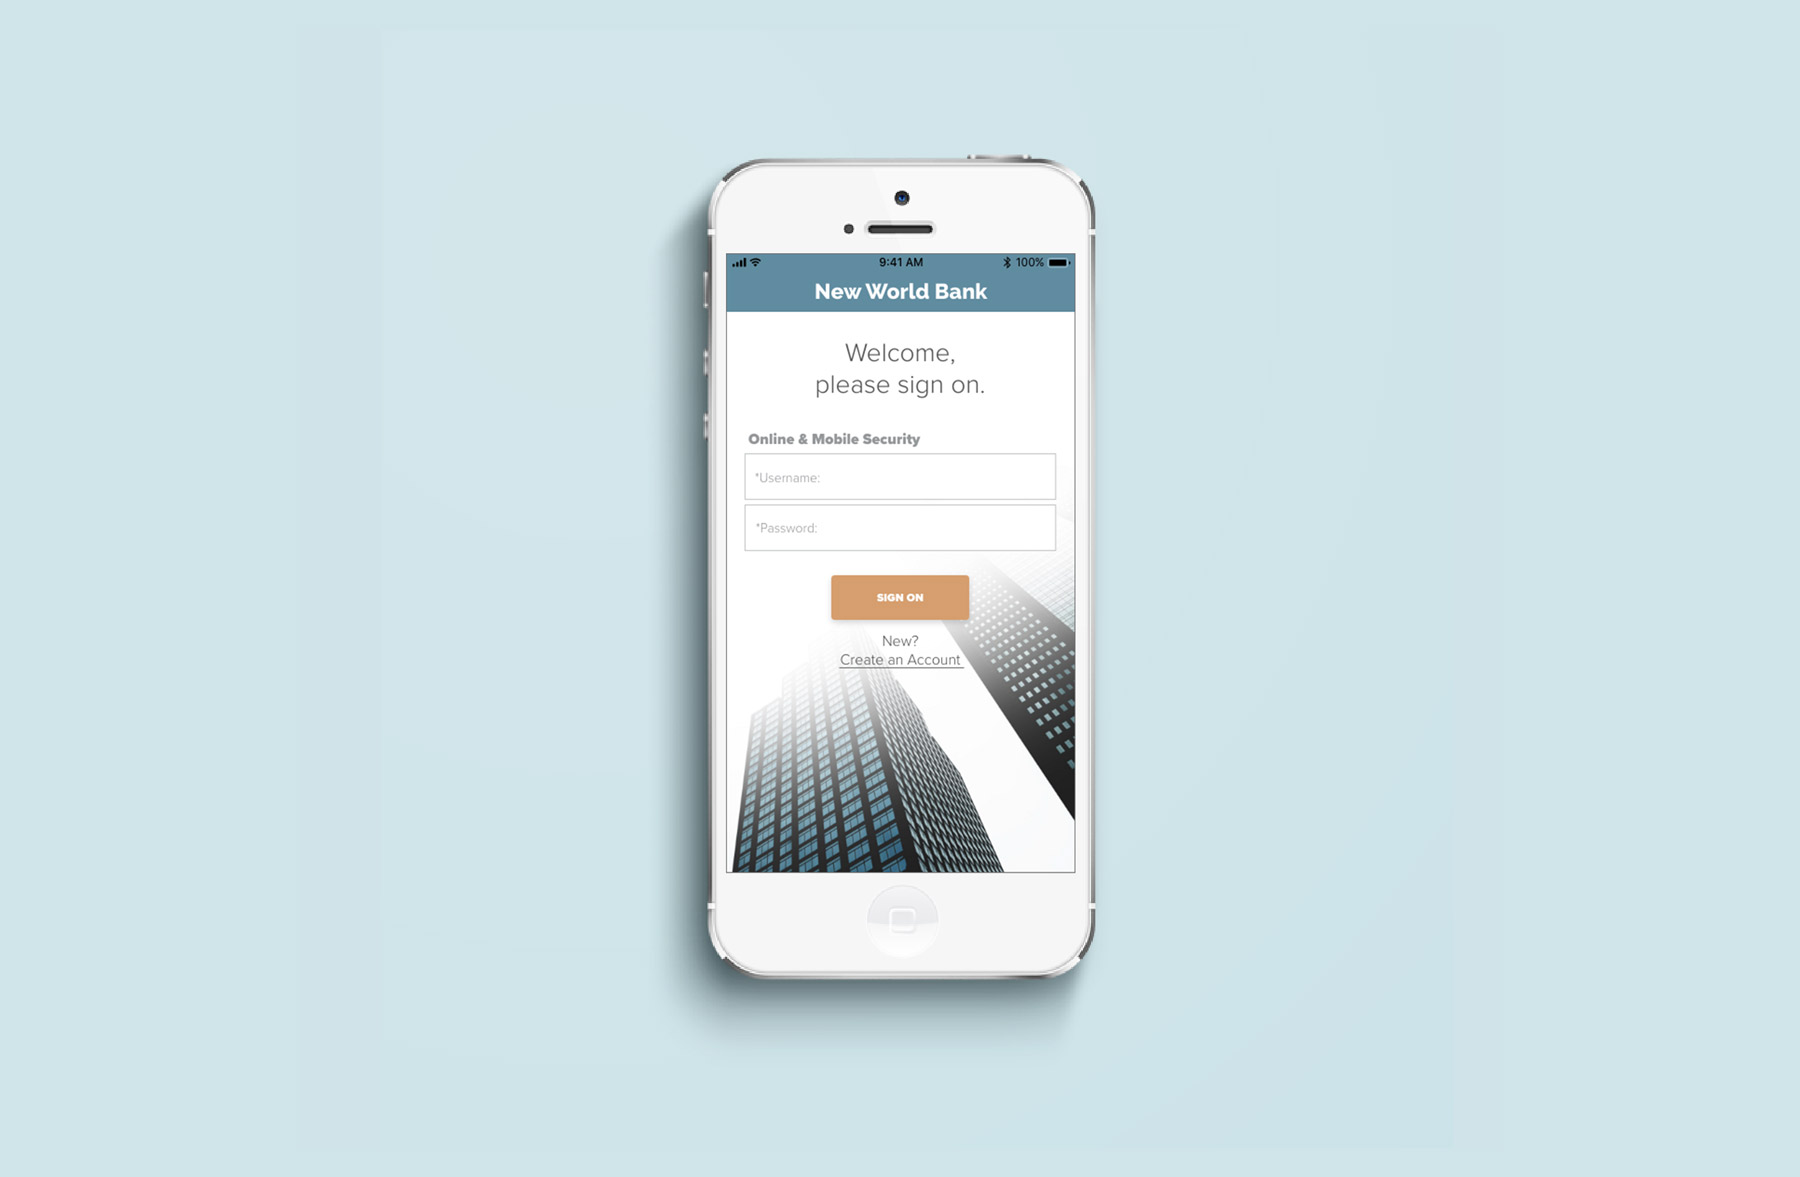 New World Bank - A banking app redesign for modern users.